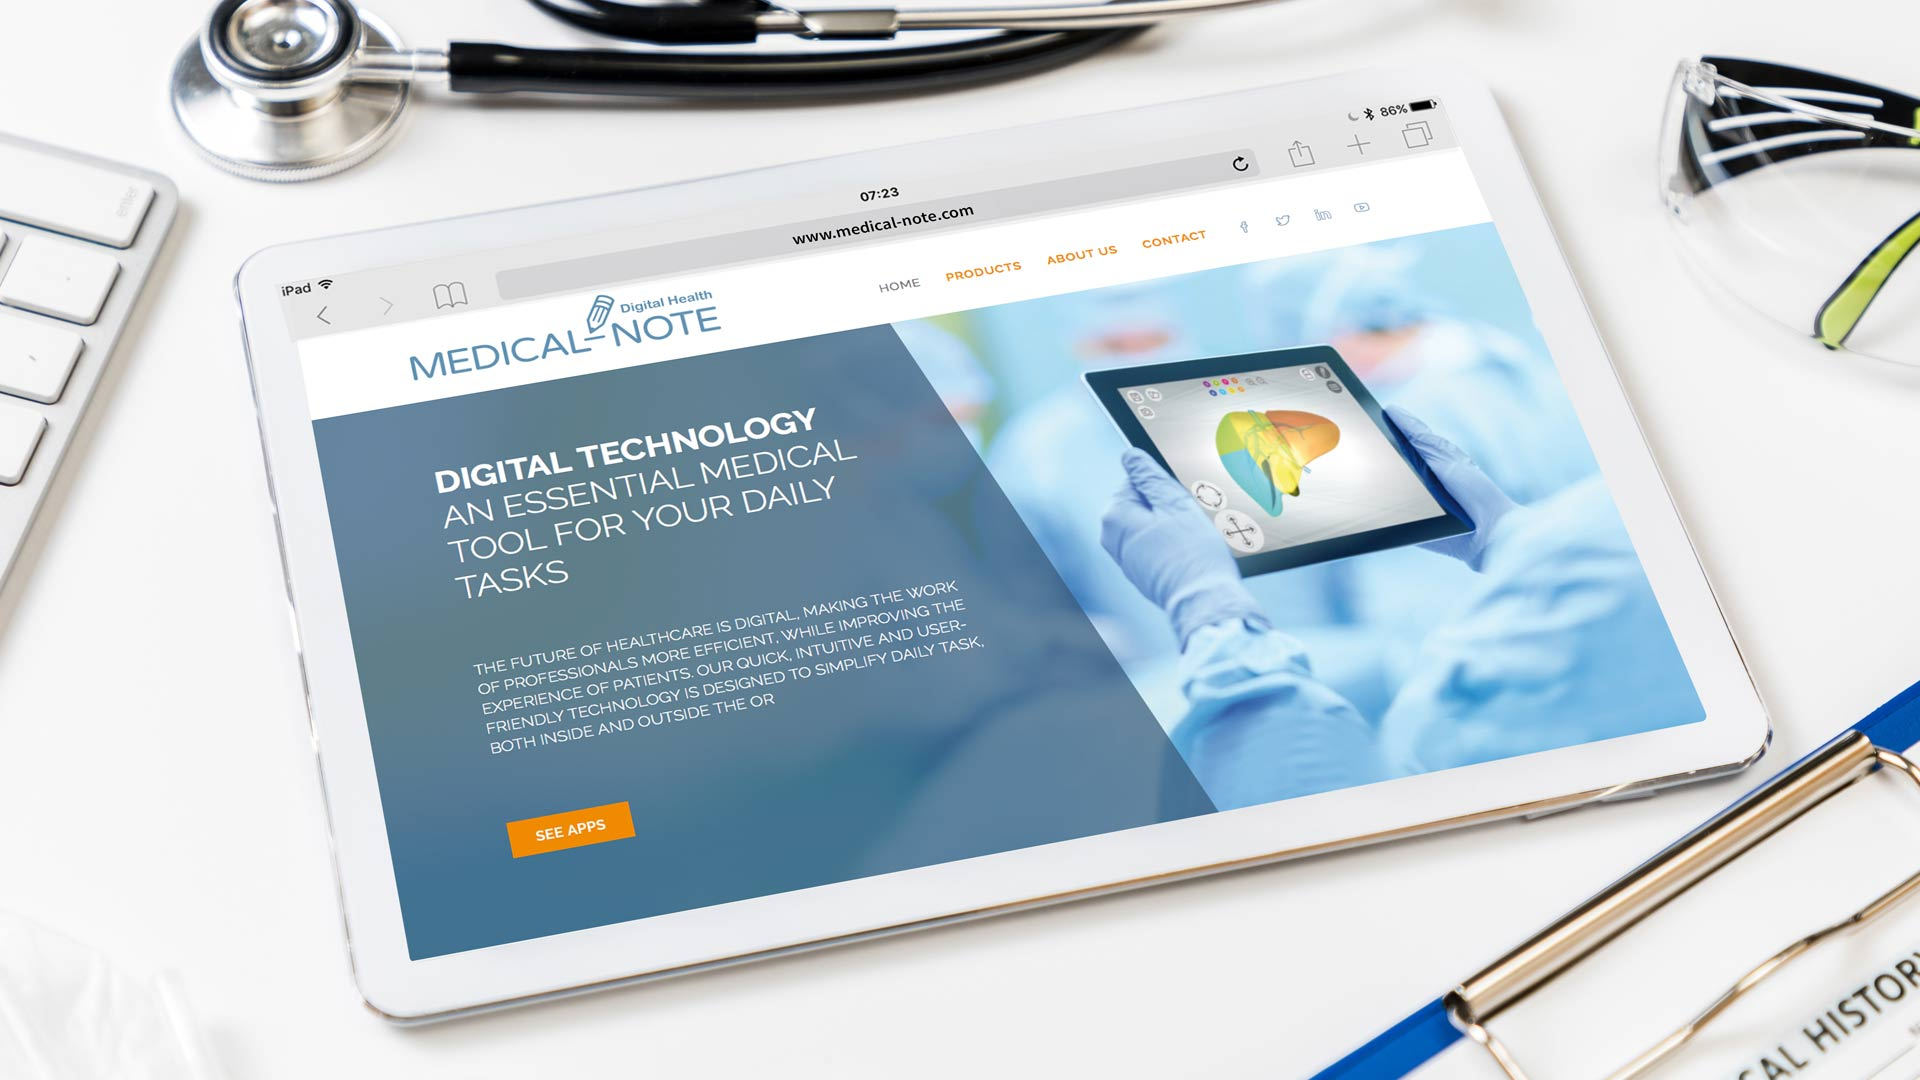 Sito Medical Note